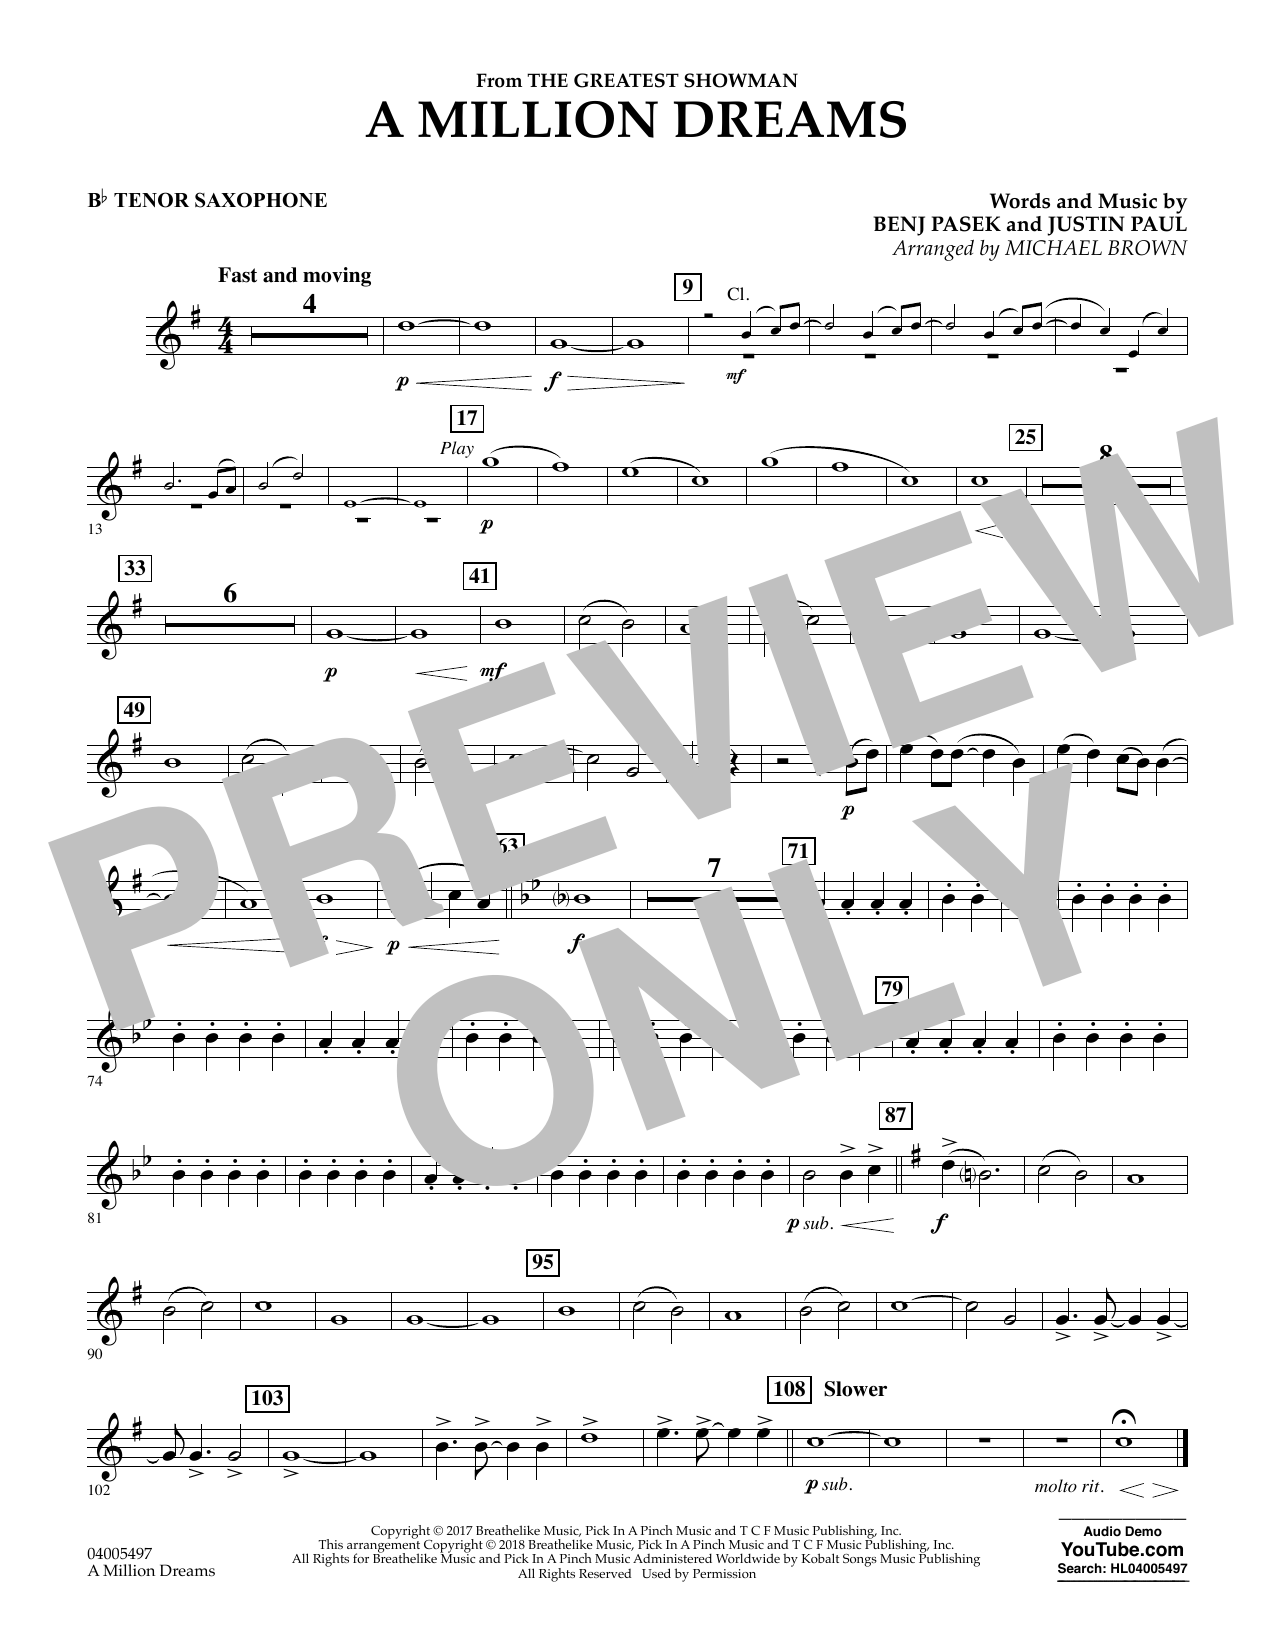 Pasek & Paul A Million Dreams (from The Greatest Showman) (arr. Michael Brown) - Bb Tenor Saxophone sheet music notes and chords. Download Printable PDF.